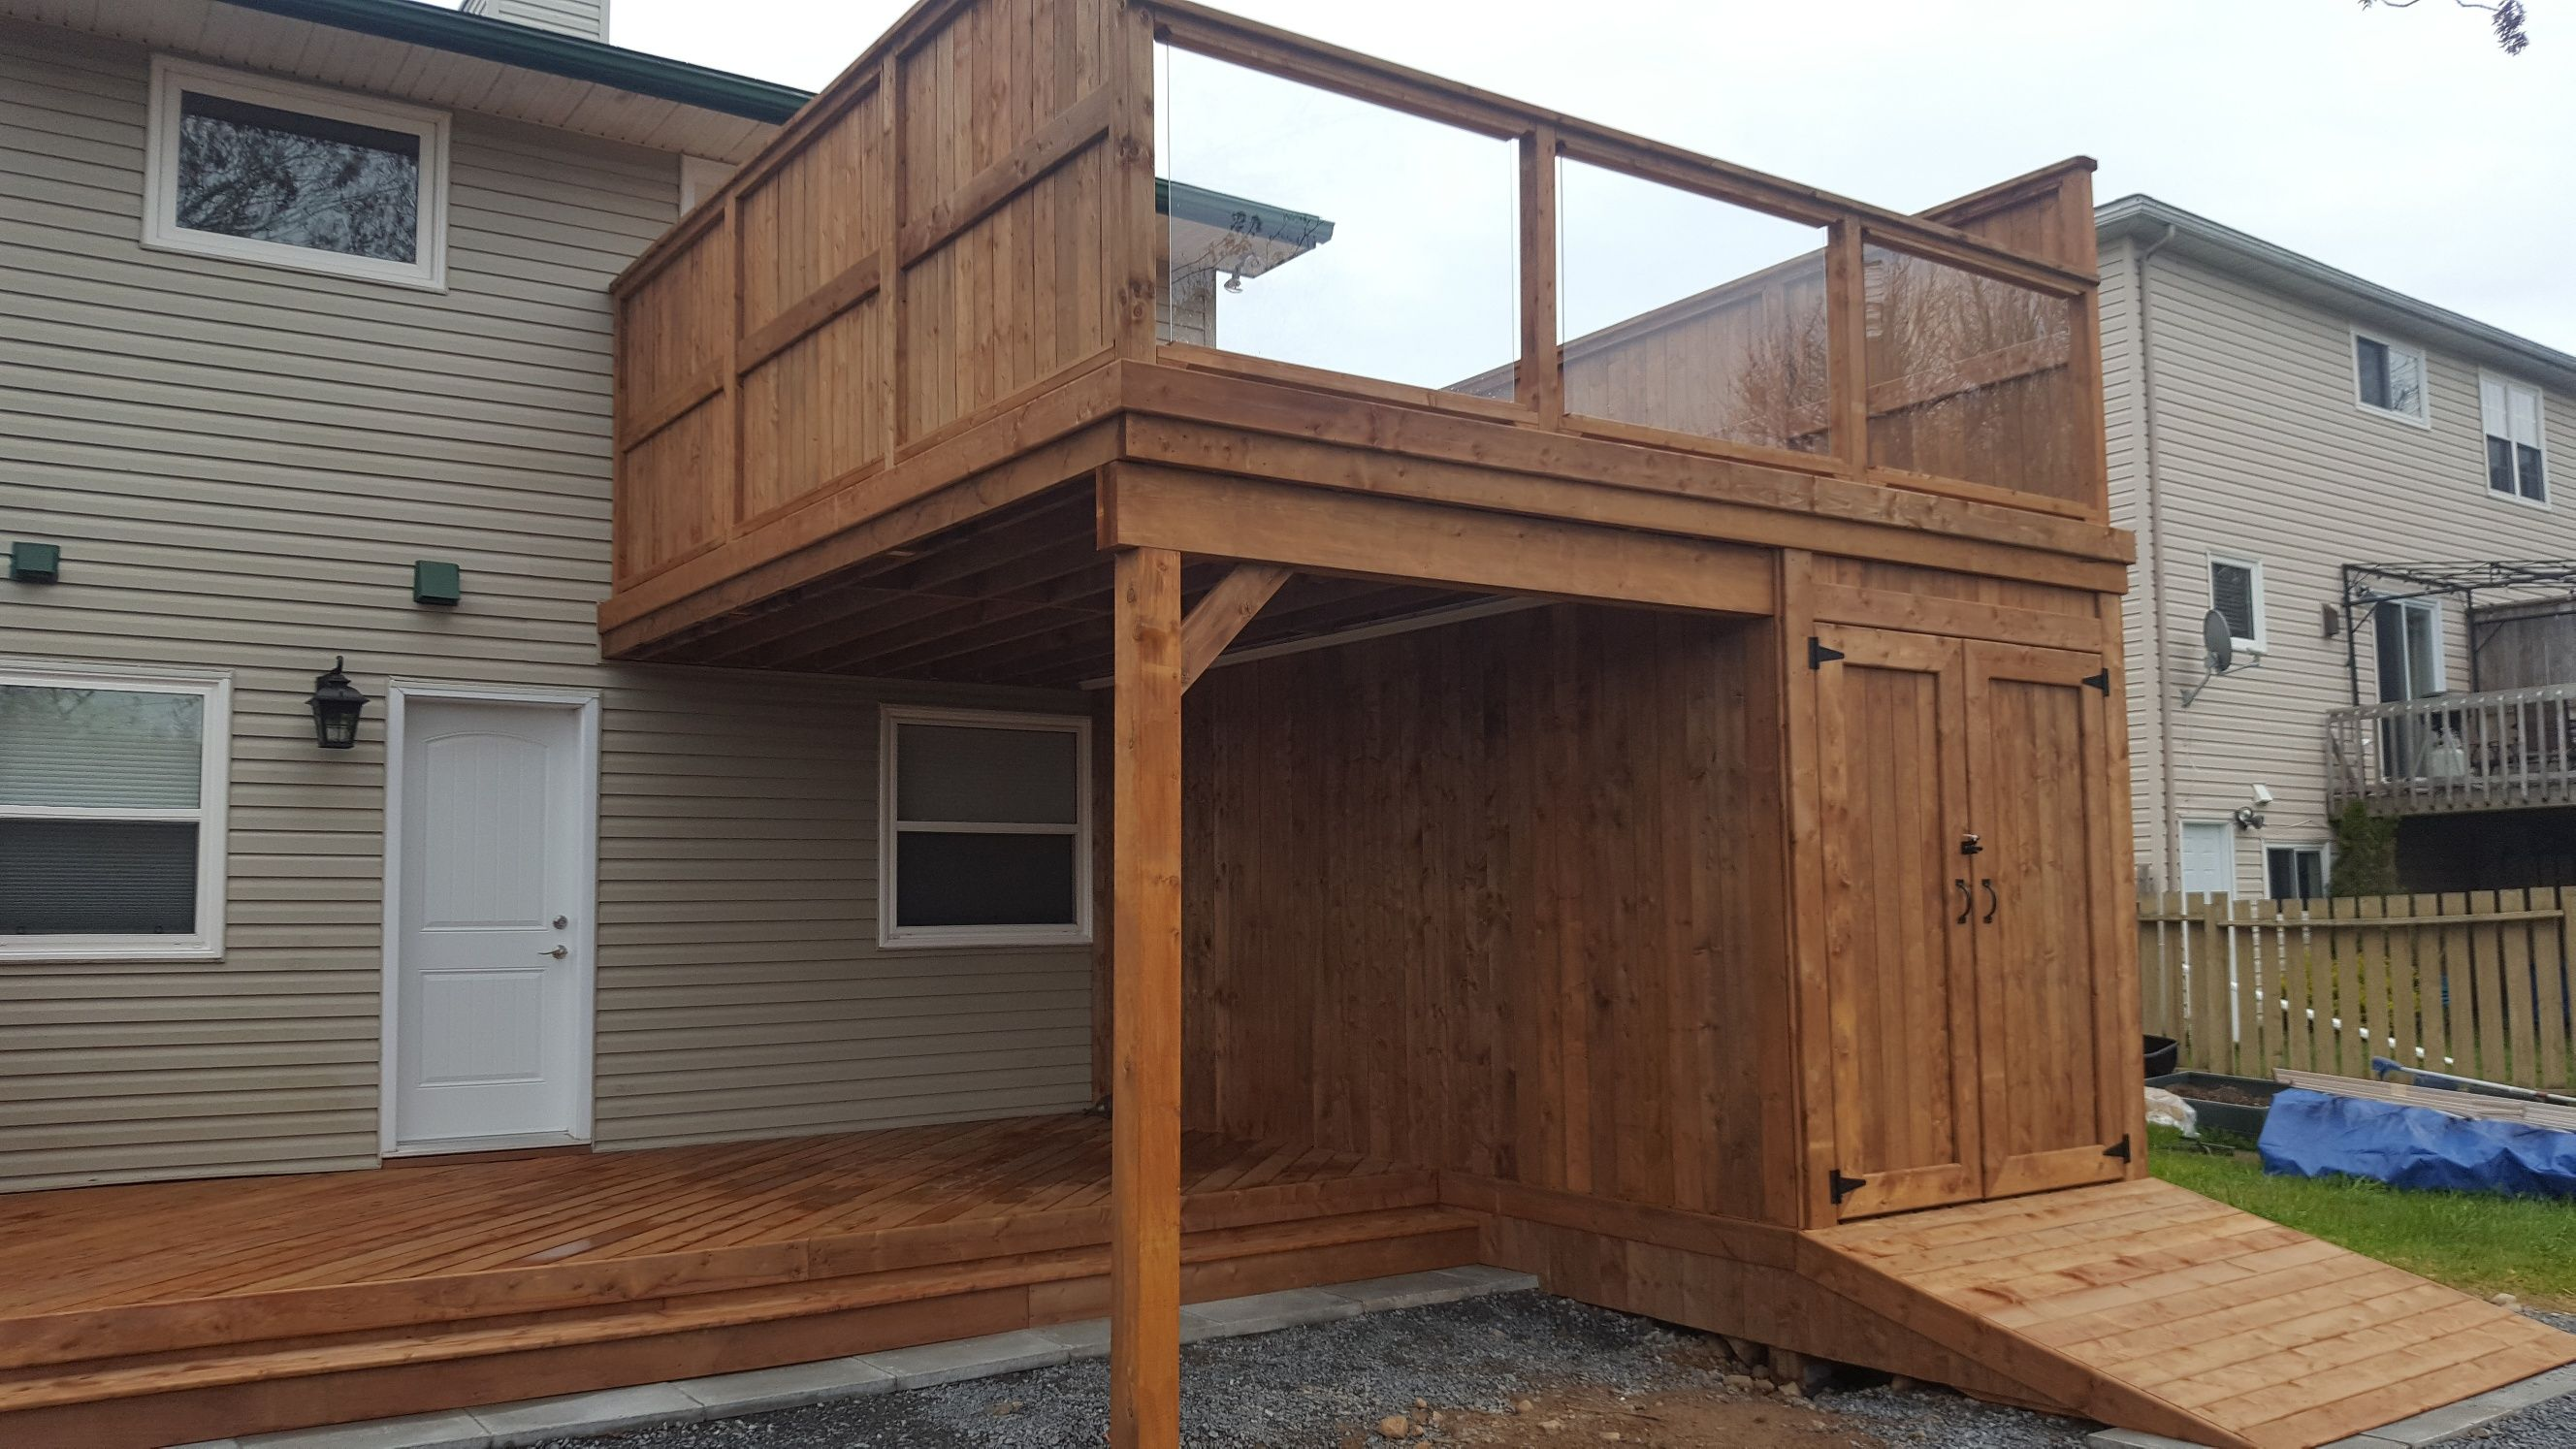 Two Level Deck Large Storage Area We Had A Blast Building